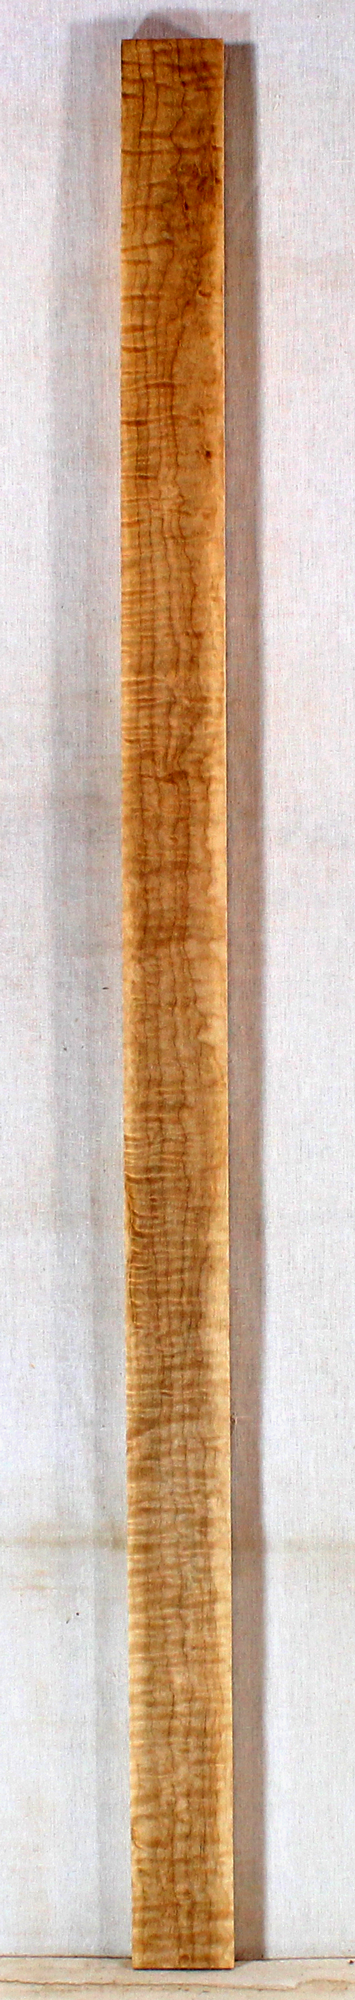 Maple Dulcimer Finger Board (BL01)